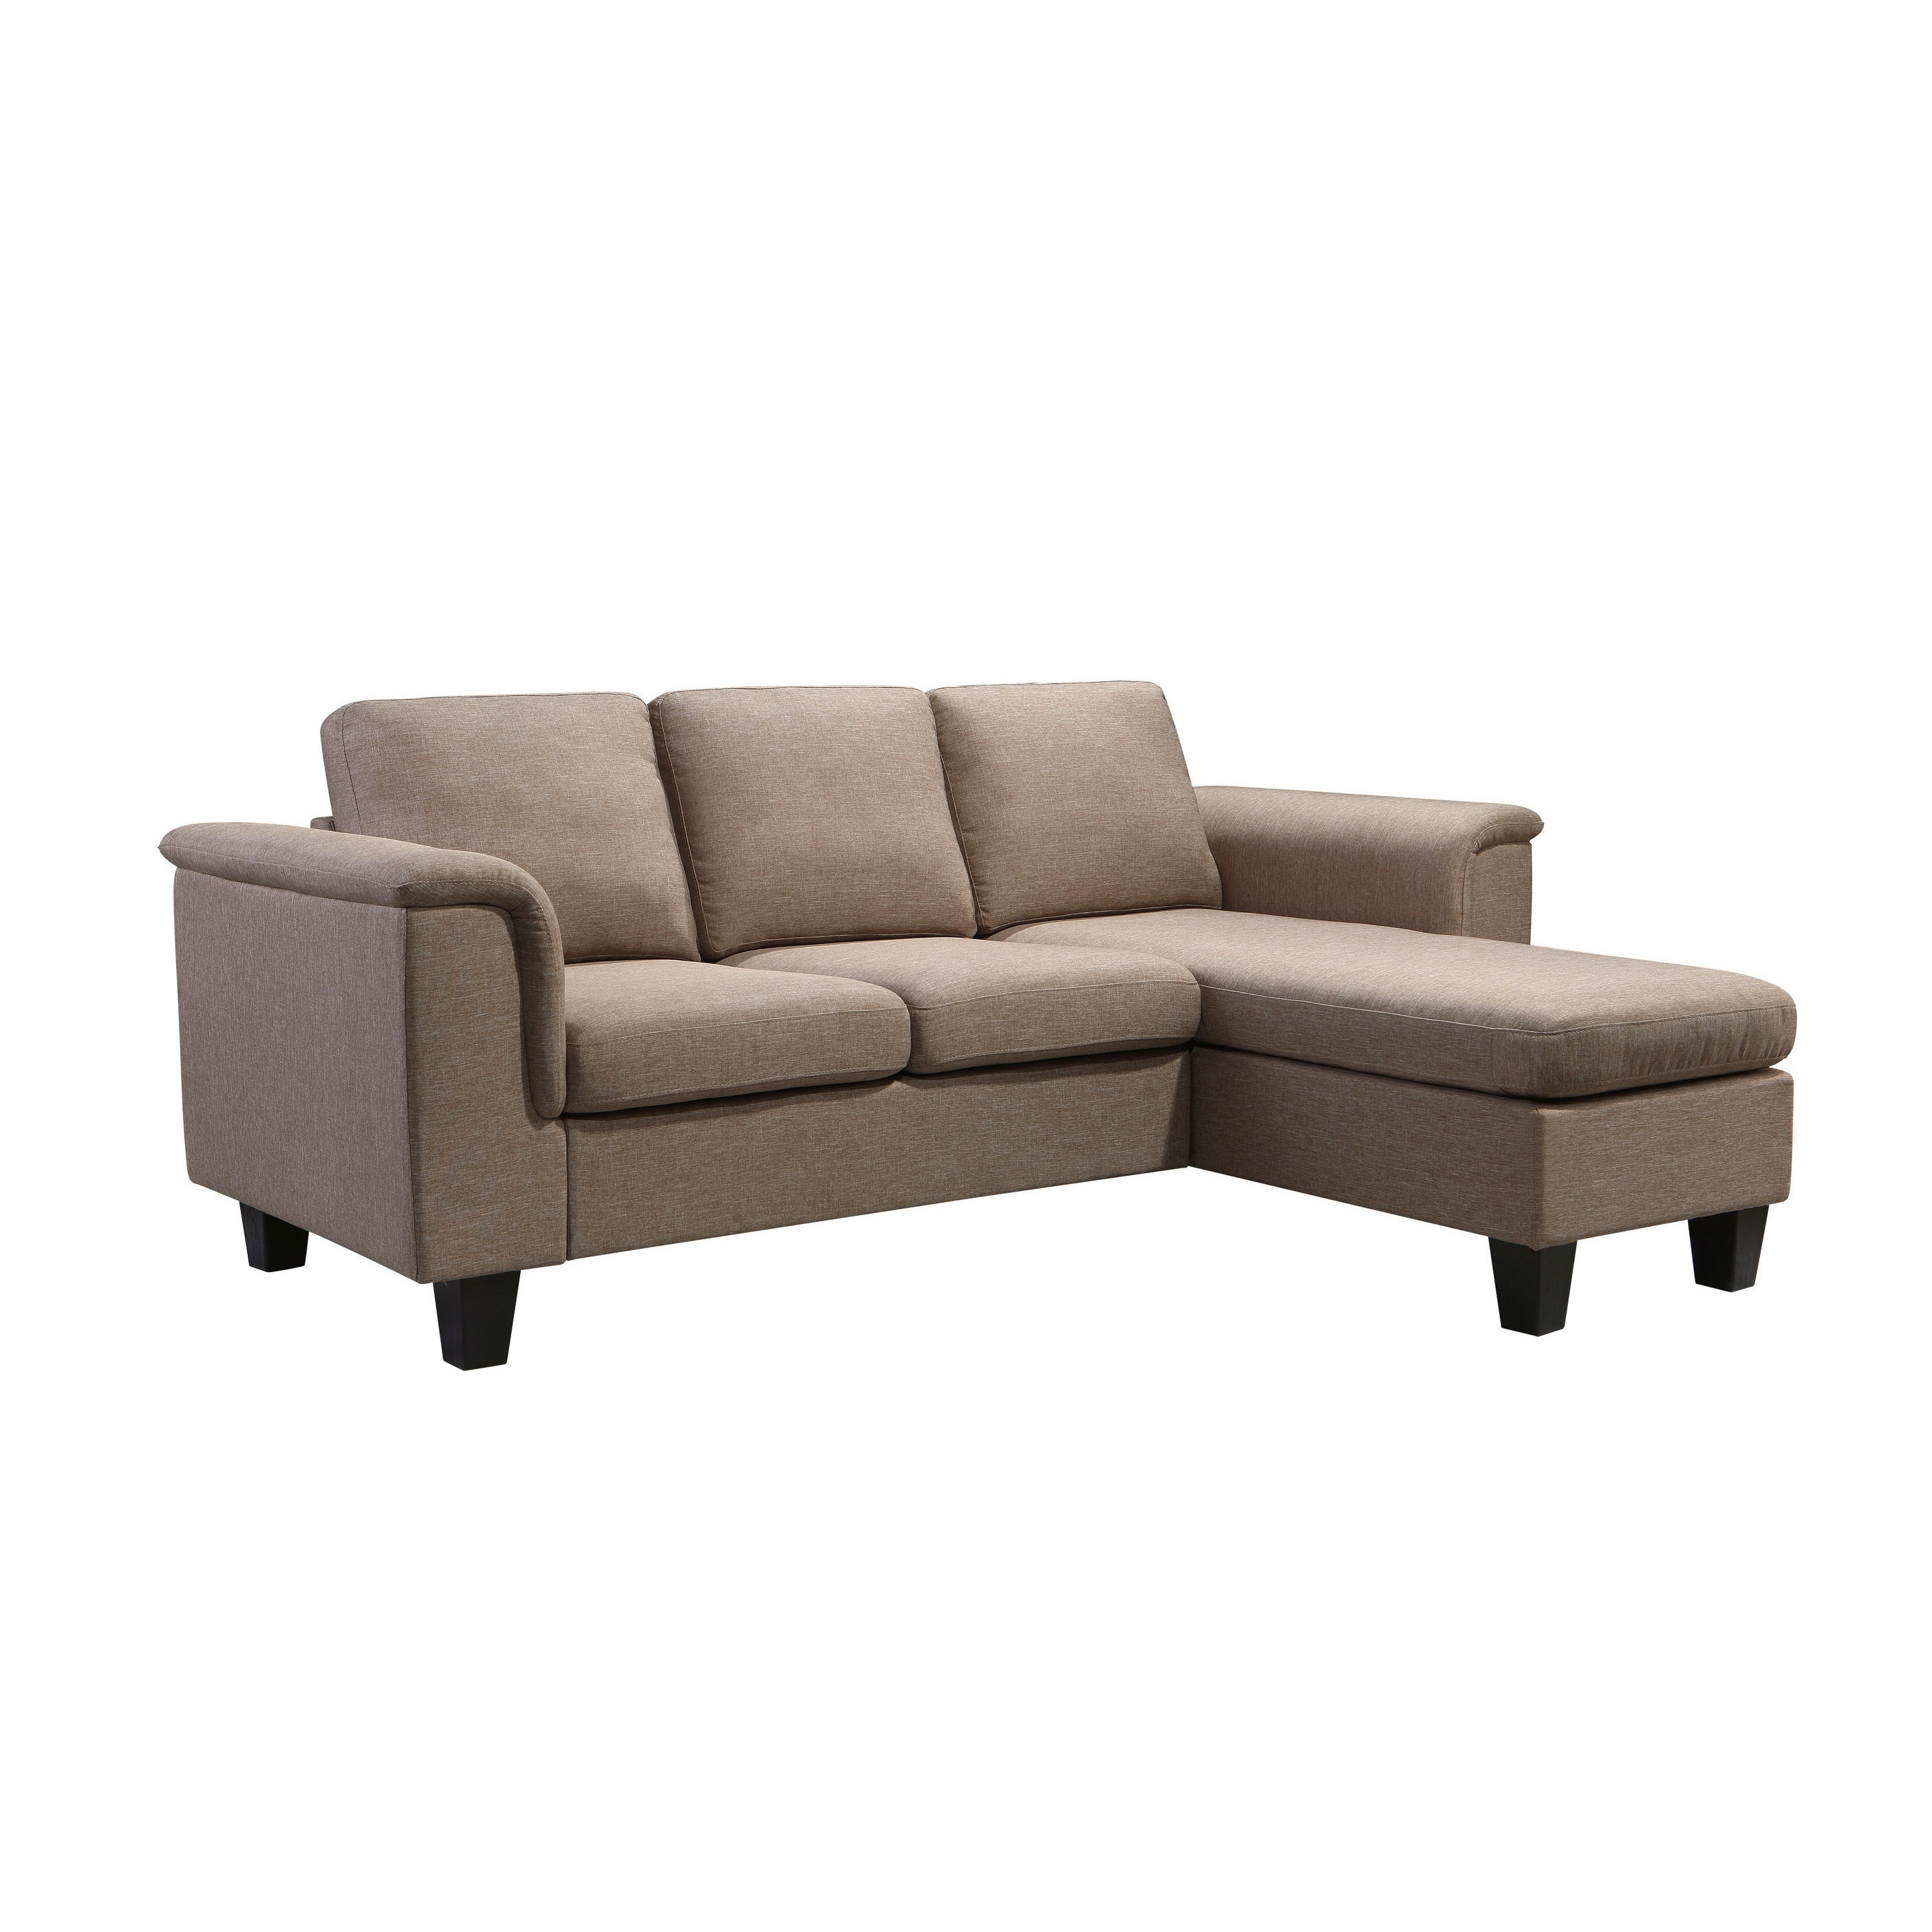 Shop Kinnect York Linen 2 Seat Sofa And Chaise   Free Shipping Today    Overstock.com   17138110